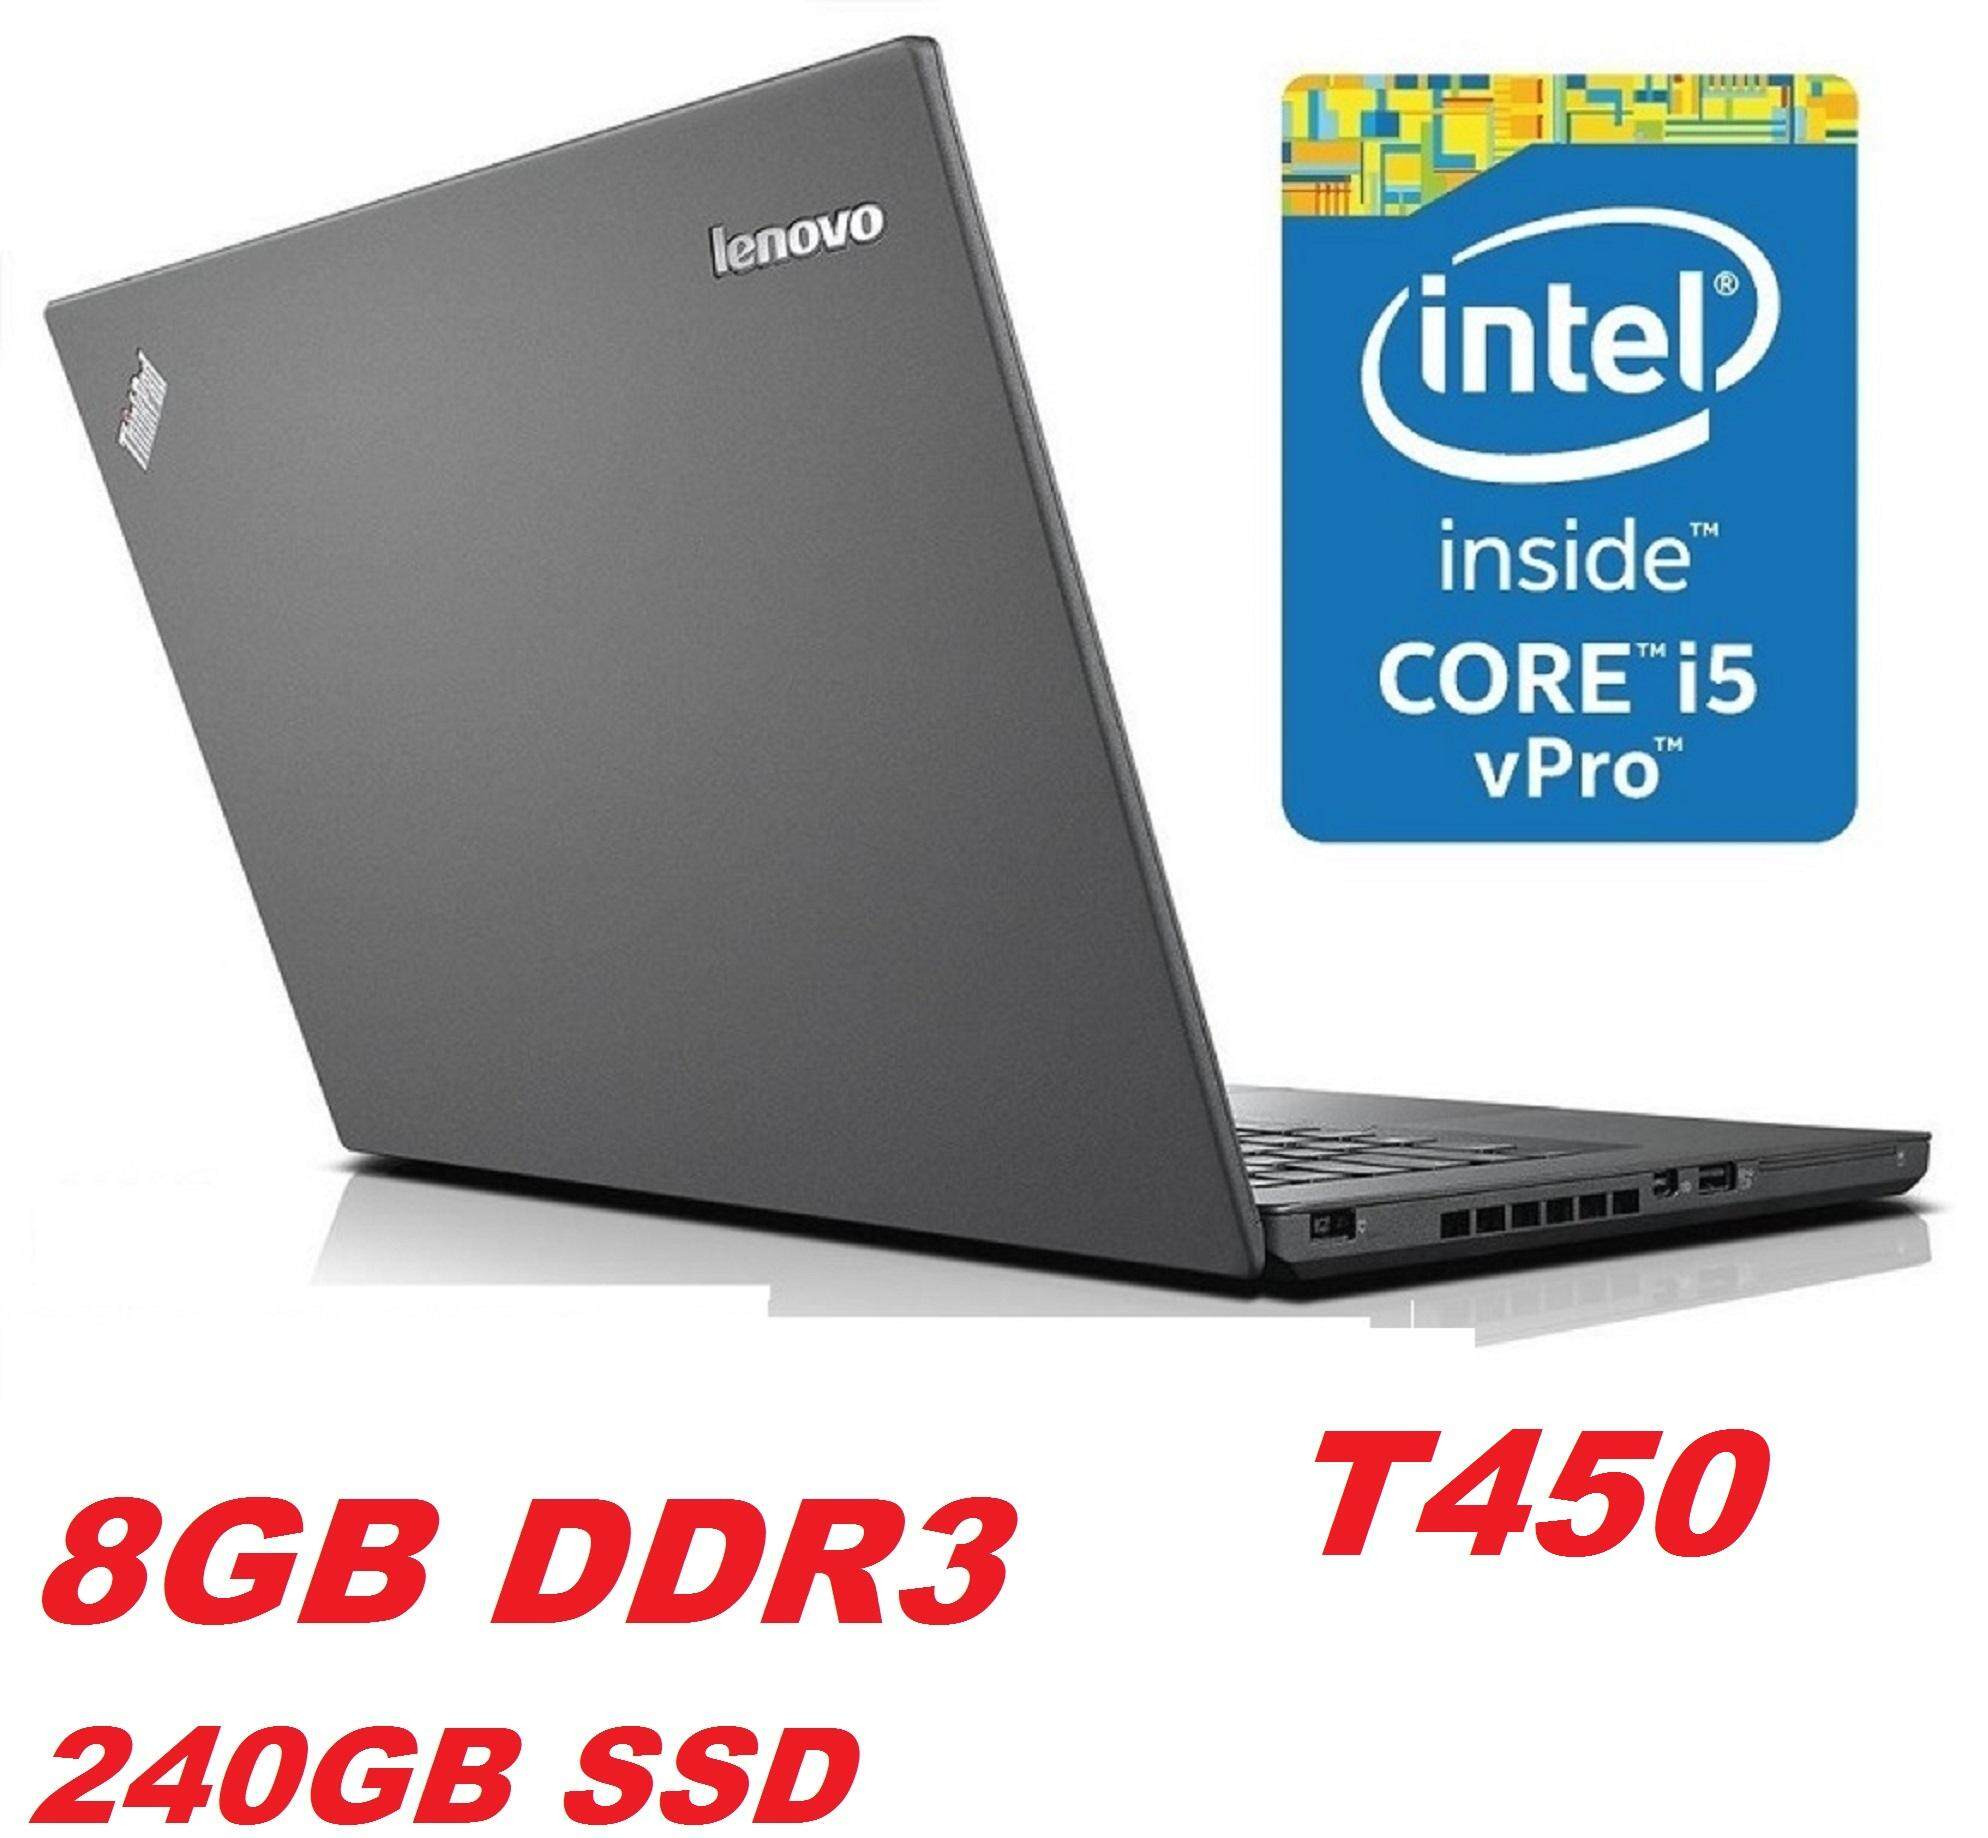 LENOVO THINKPAD T450 INTEL CORE i5 5TH GEN5300U 2.3 GHZ/8GB DDR3 RAM/240GB SSD/14 LED SCREEN/INTEL HD GRAPHIC CARD/WIN 10 PRO Malaysia